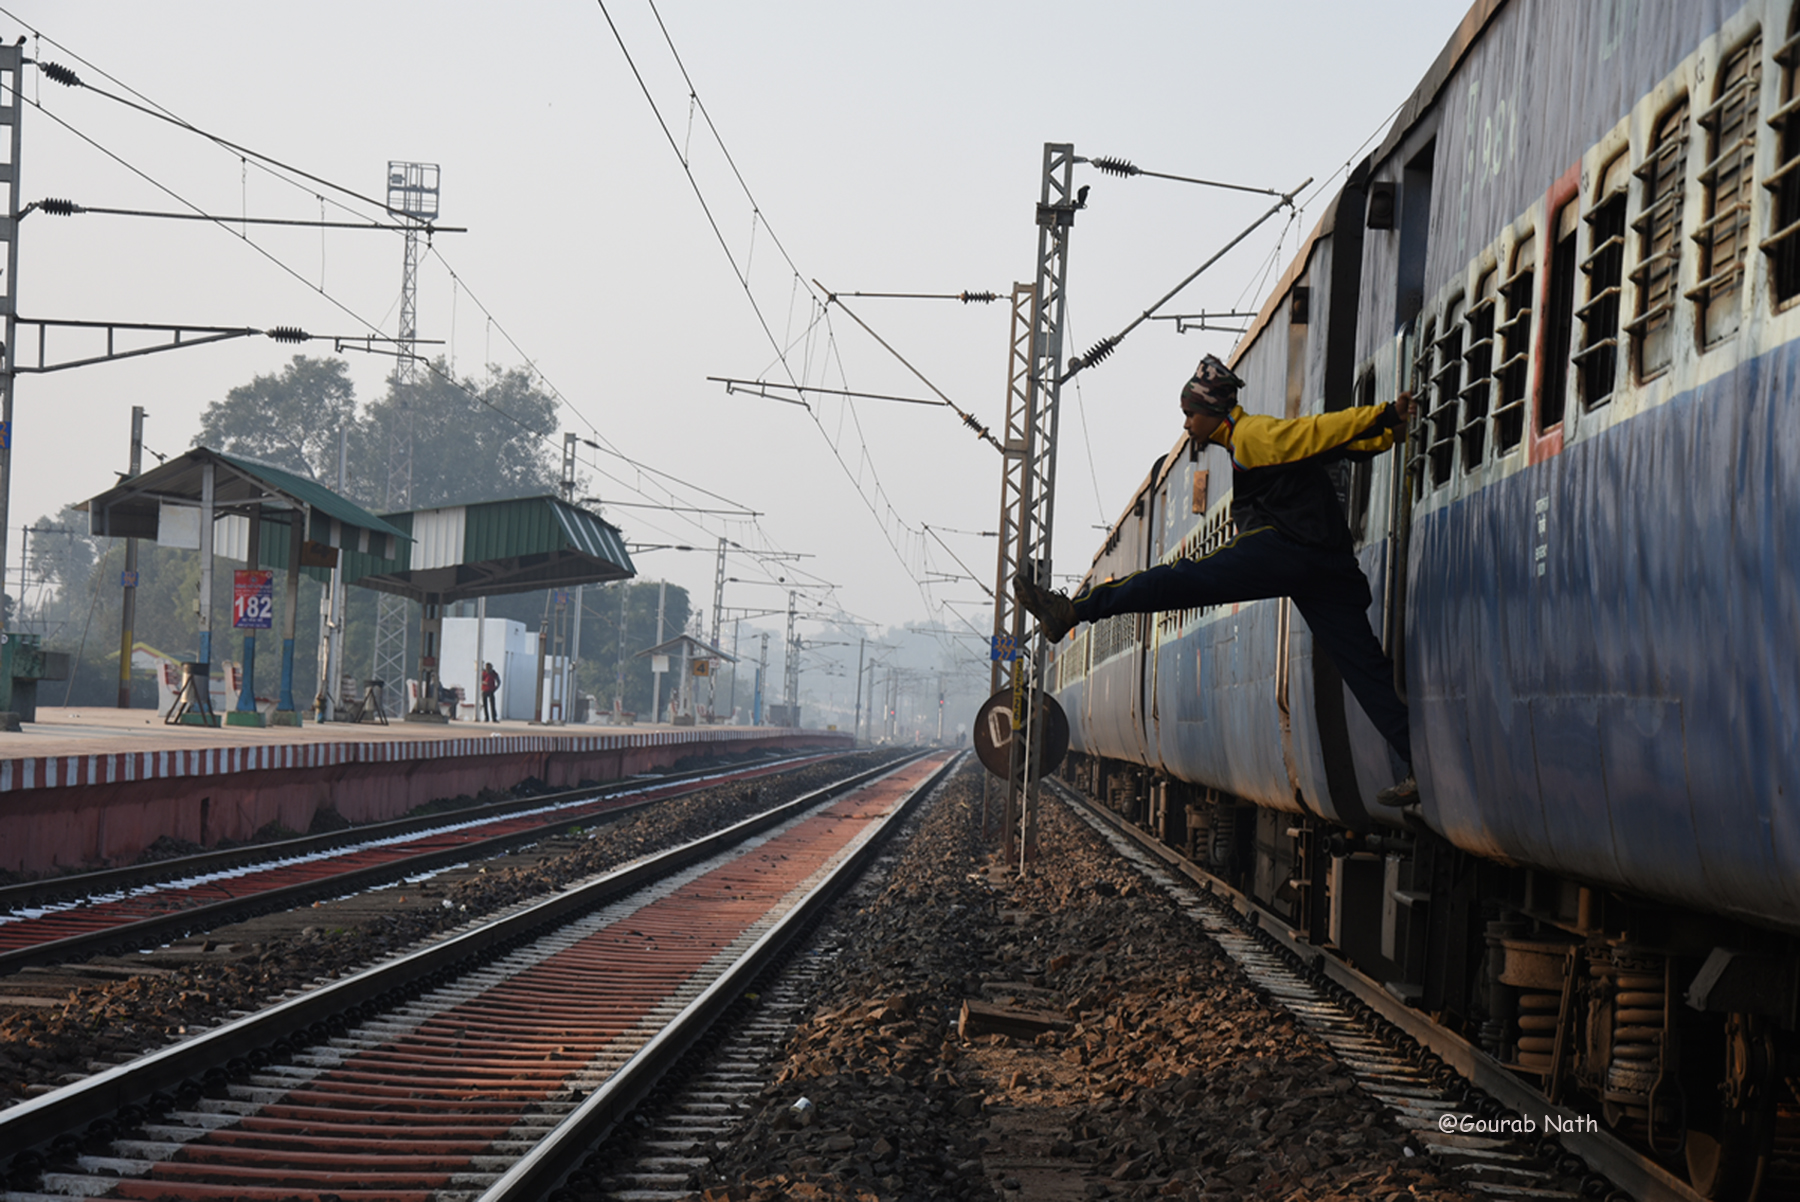 It was captured in the morning at Purulia railway station. The guy was exercise himself.